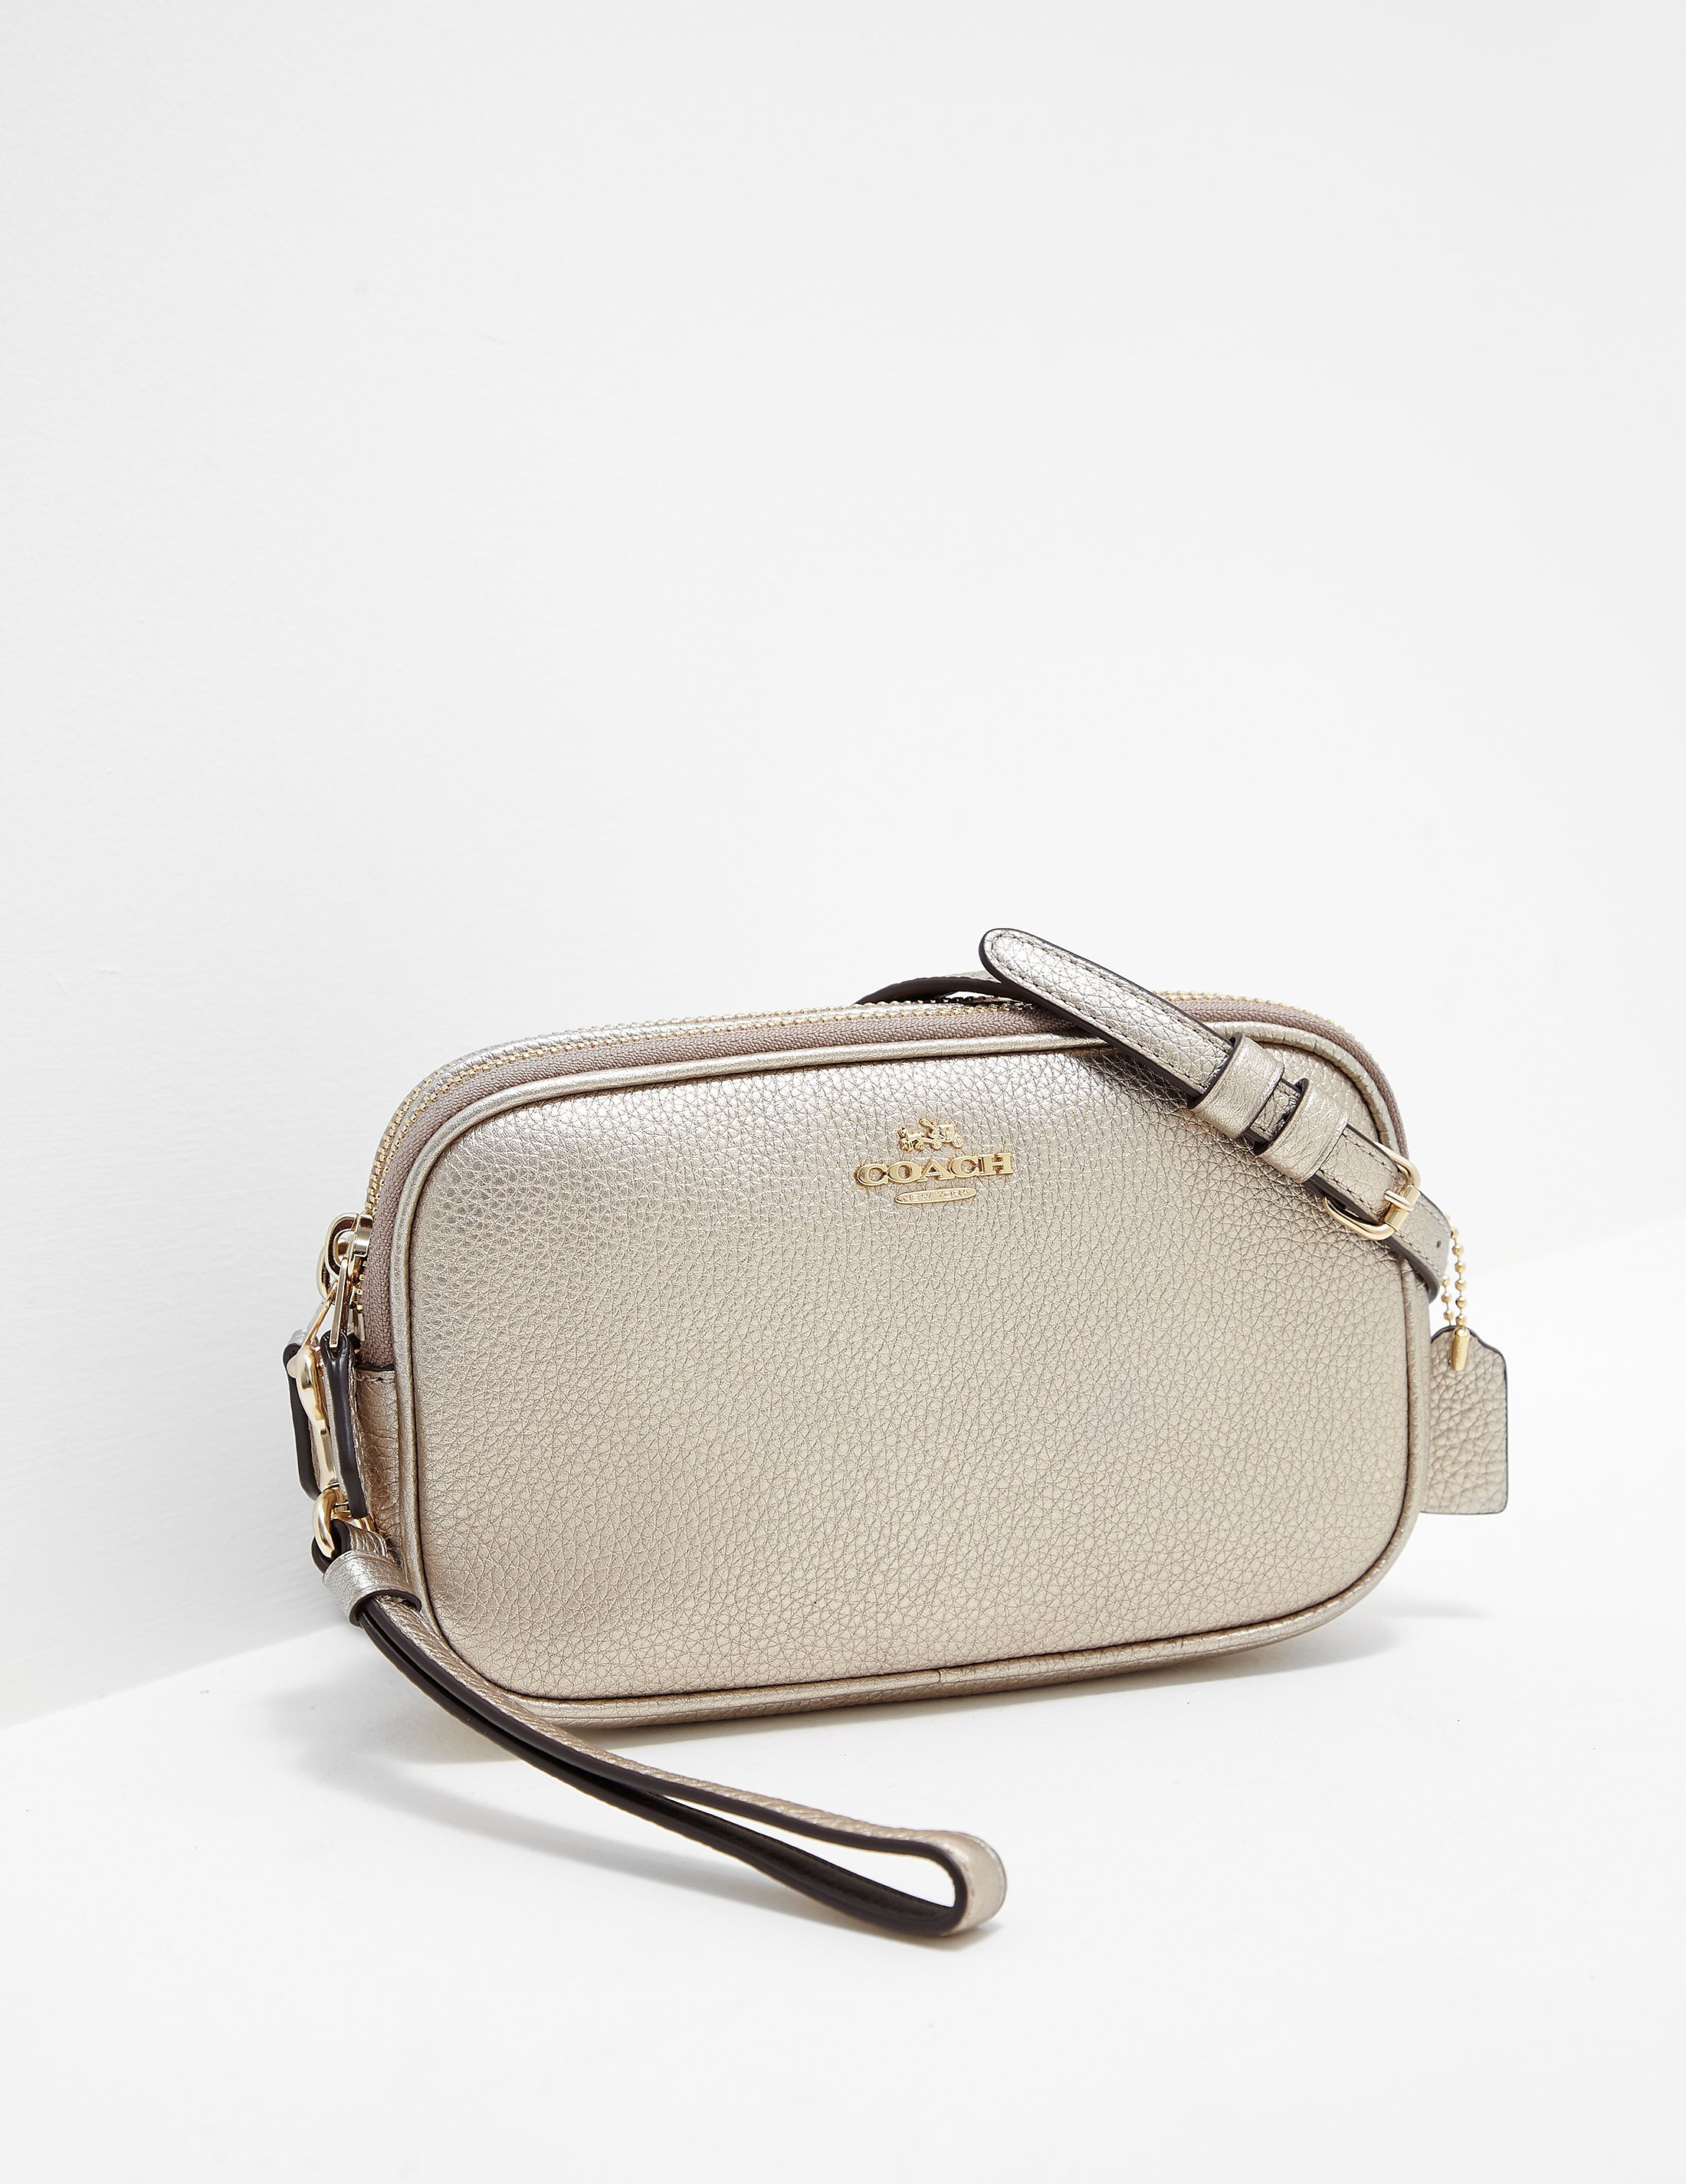 COACH Crossbody Clutch Bag